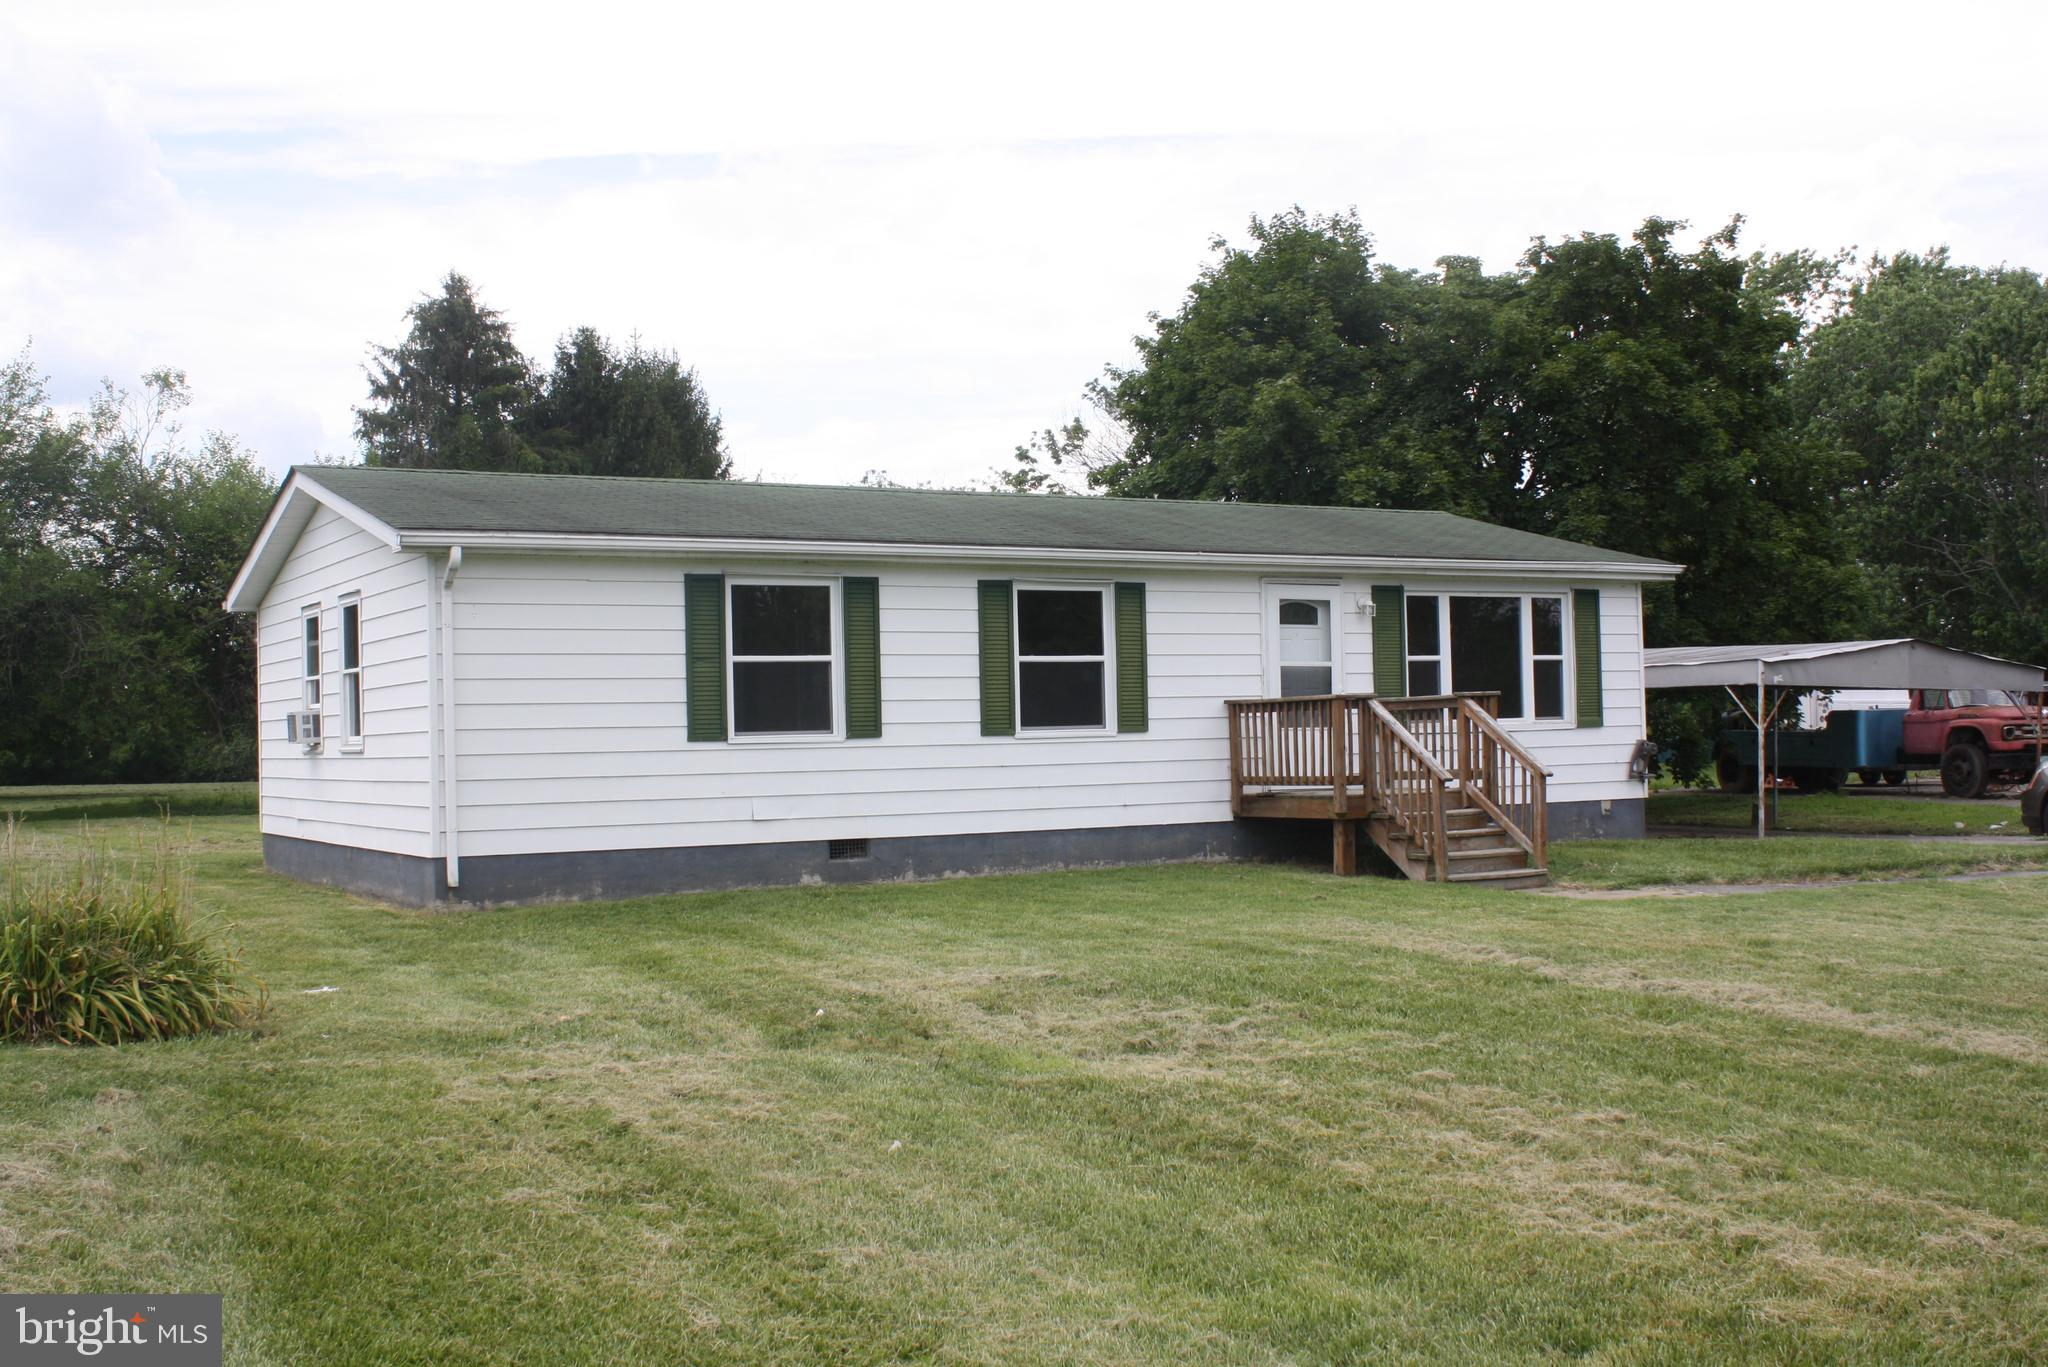 Quaint 1000 Square foot three bedroom one bath home on one acre in the quaint village of Port Penn. Just painted and ready to move into.